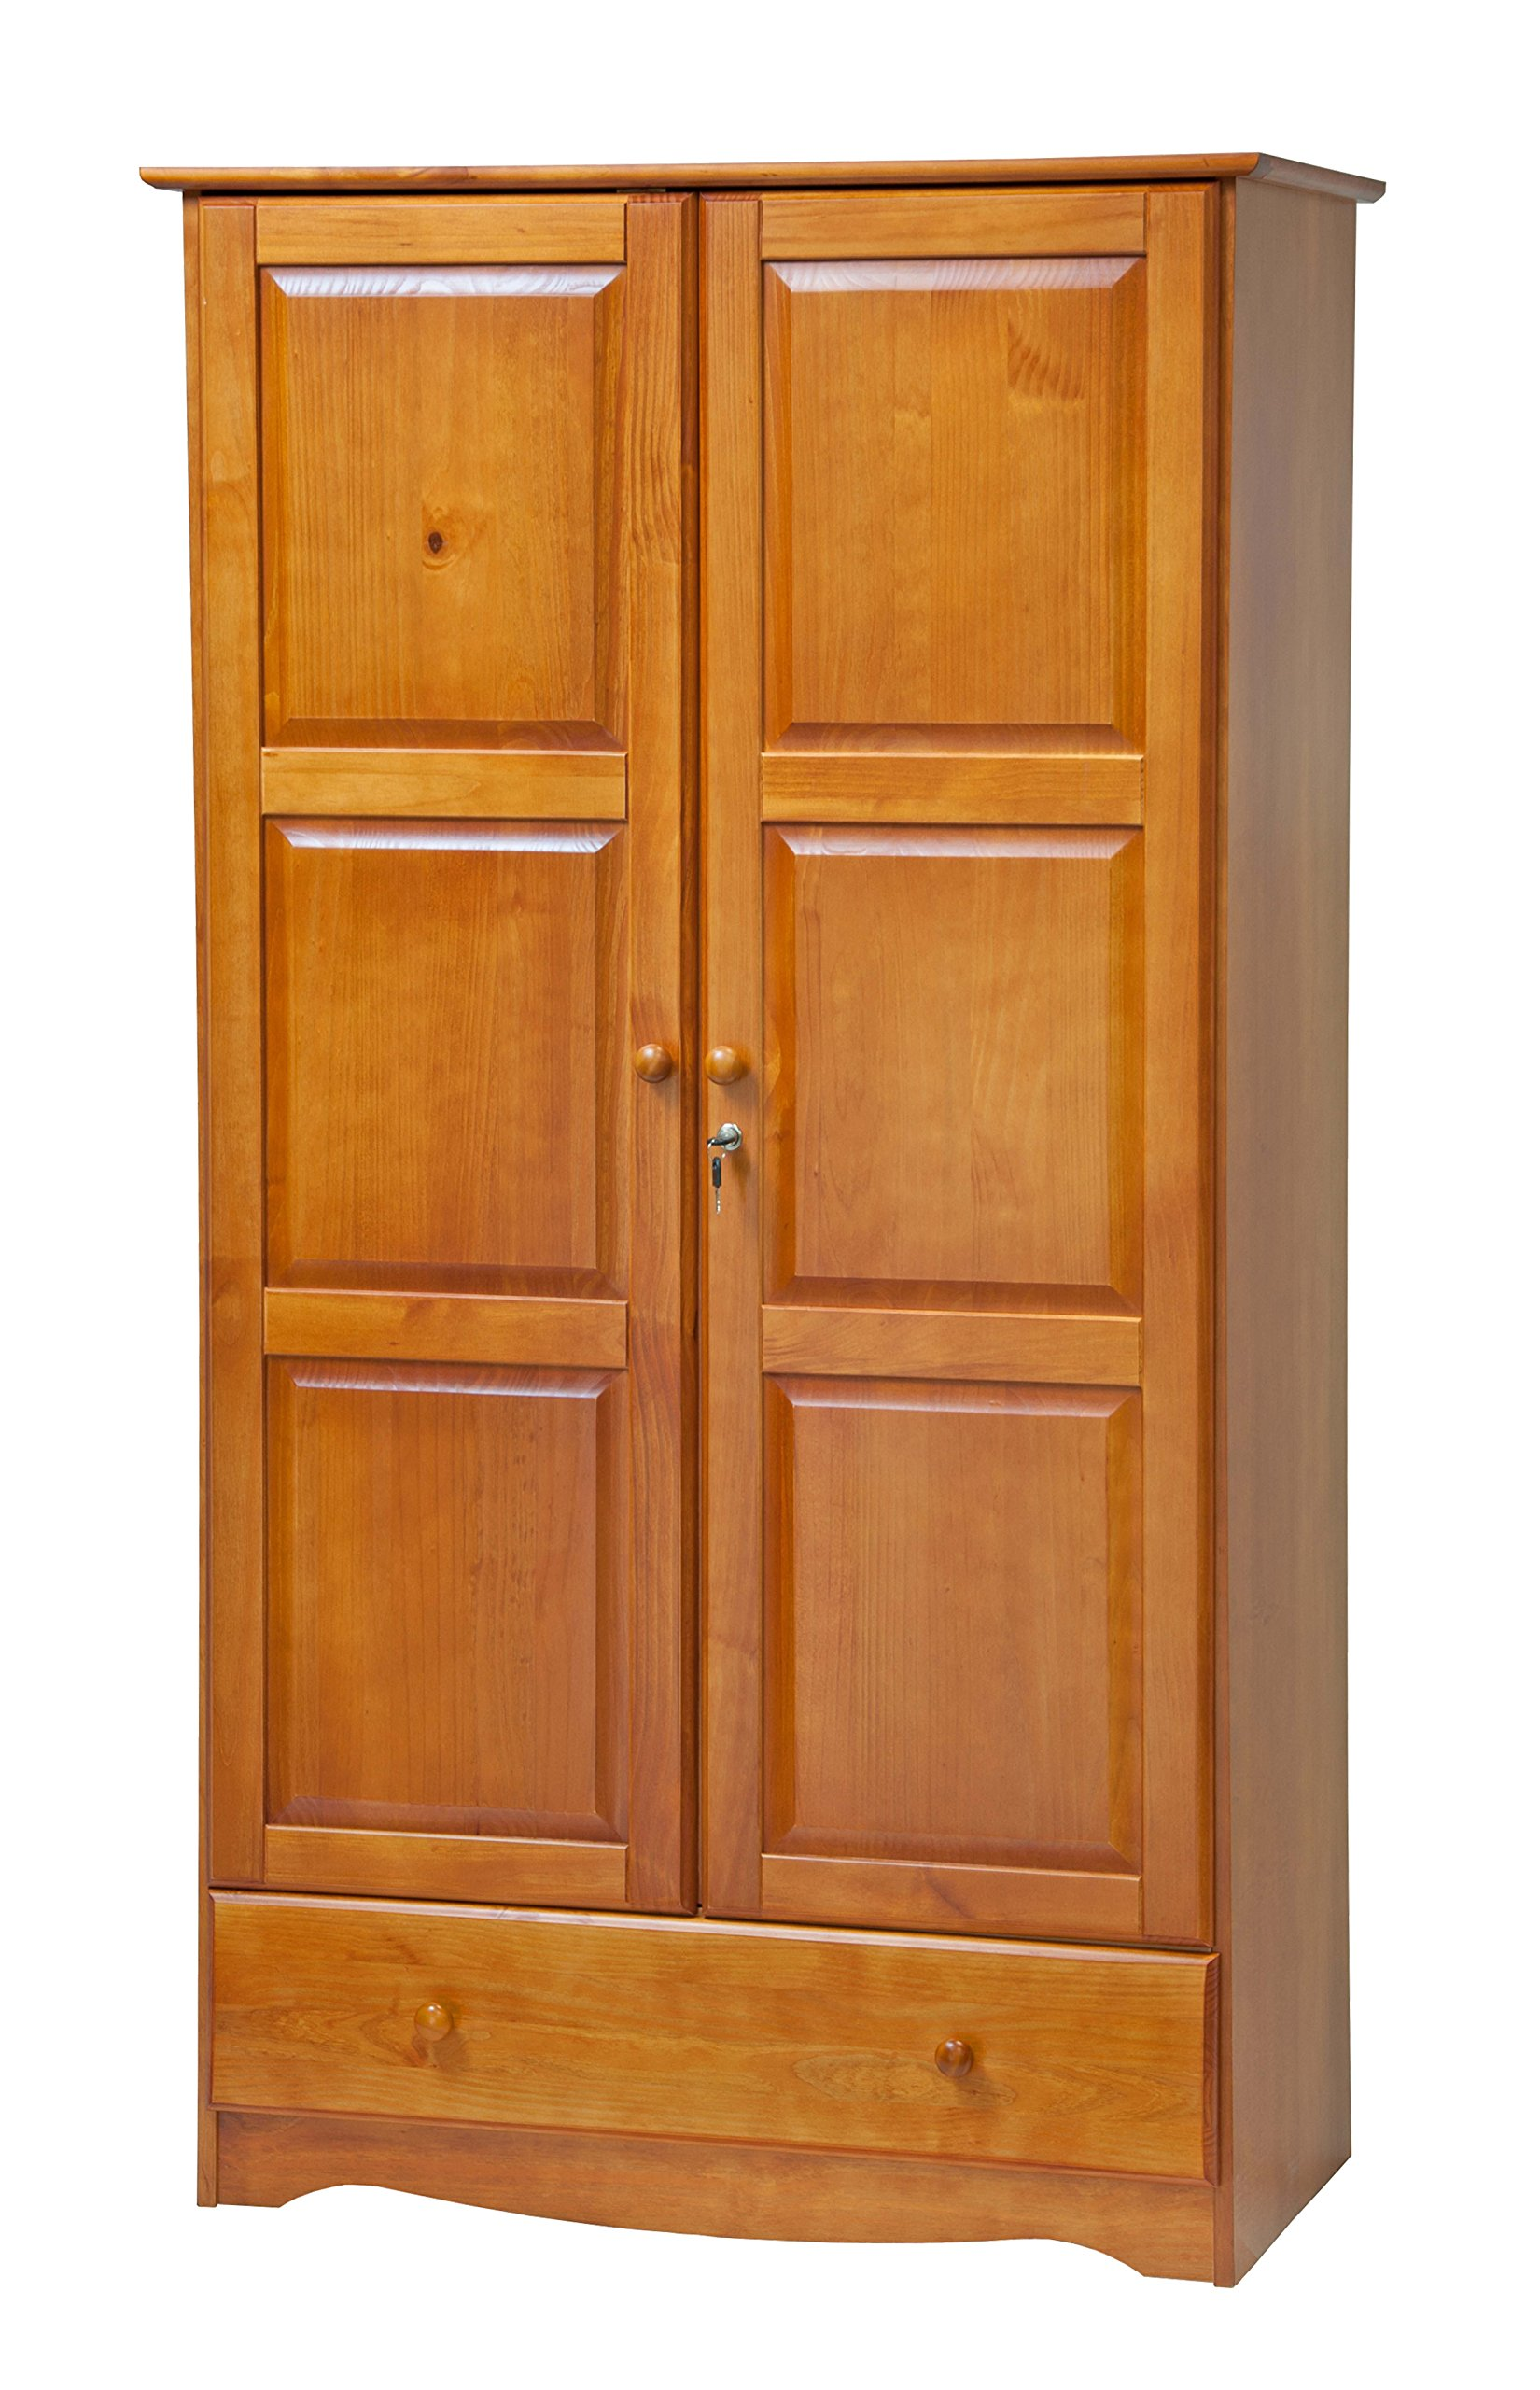 100% Solid Wood Universal Wardrobe/Armoire/Closet by Palace Imports, Honey Pine Color, 40''W x 72''H x 21''D, 2 Clothing Rods, 2 Shelves, 1 Lock, 1 Drawer Included. Additional Shelves Sold in Packs of 2.